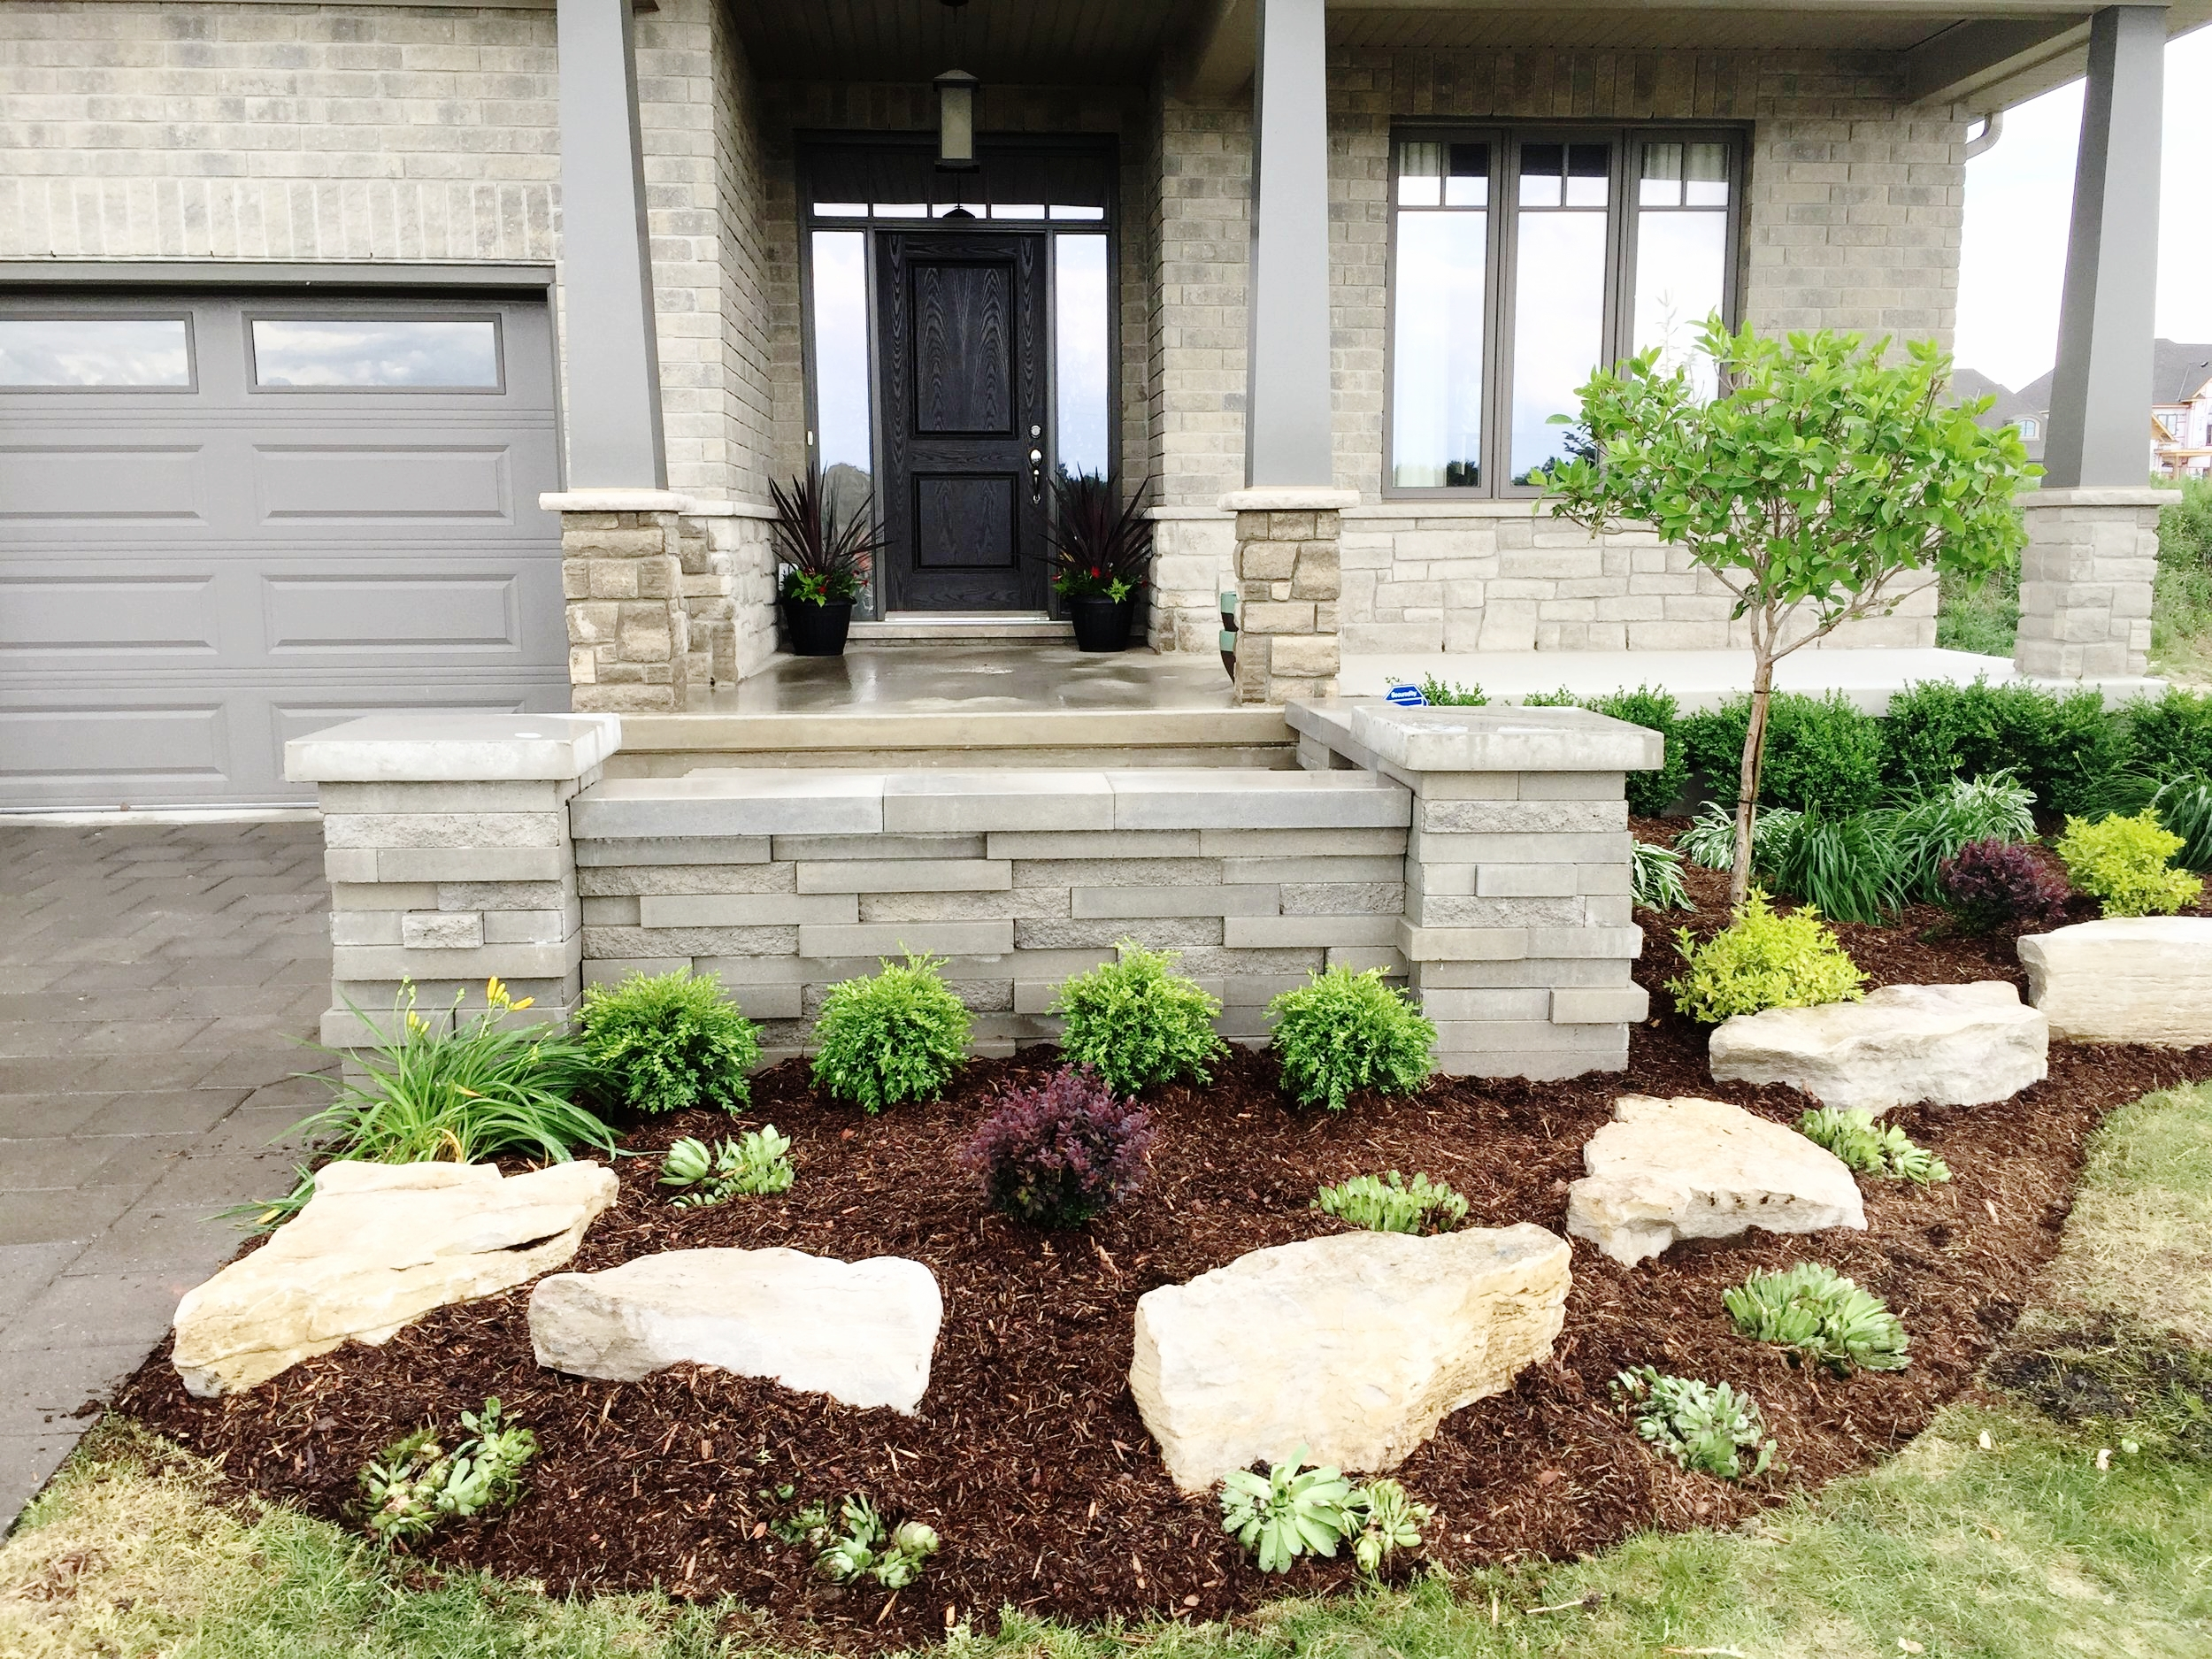 london-ontario-best-landscaper-garden-backyard-patio-10.jpeg